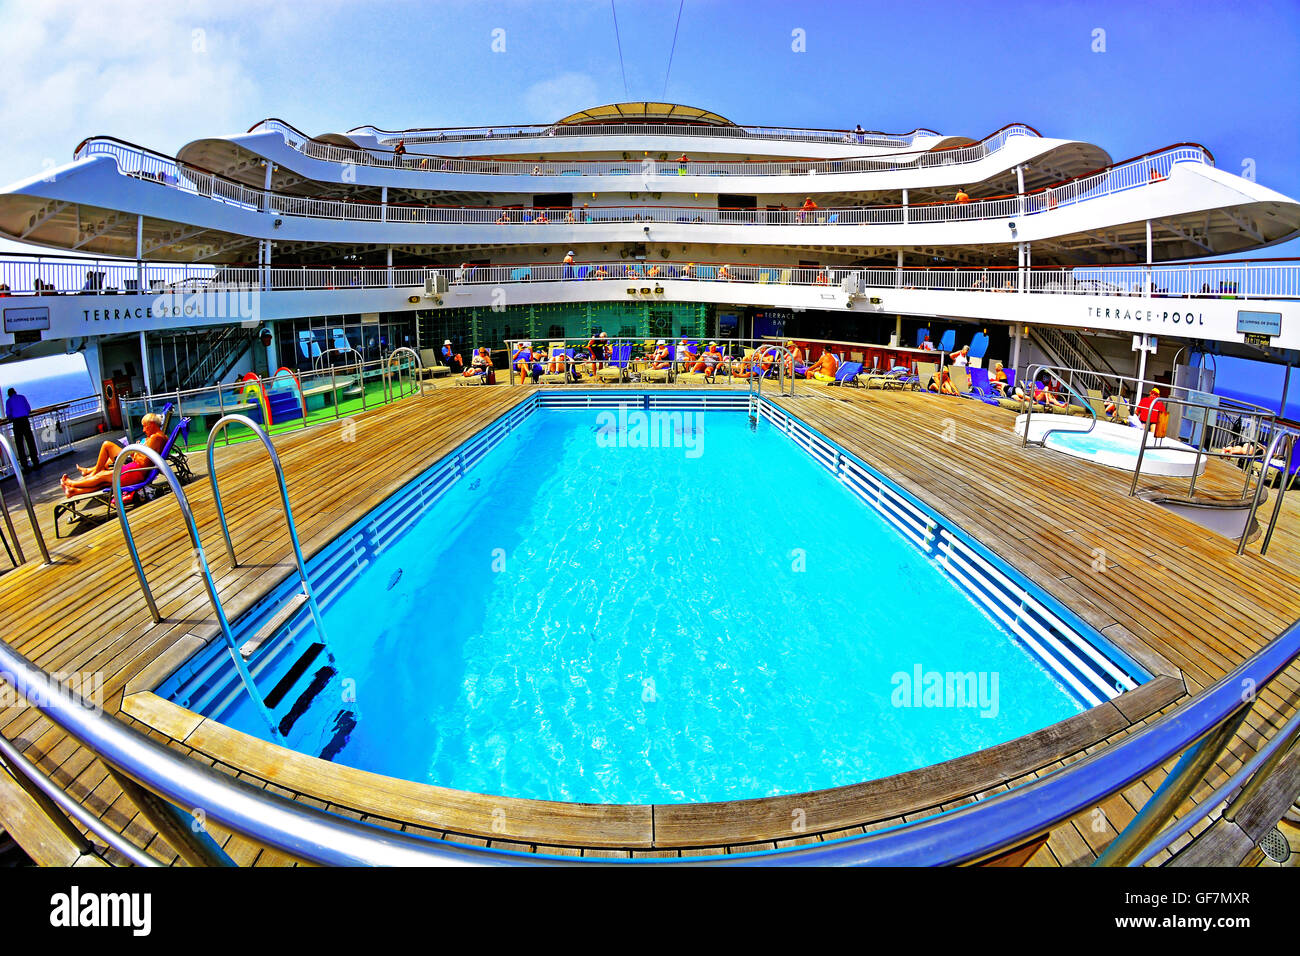 P&O cruise ship Aurora aft terrace pool in the Mediterranean sea Stock Photo